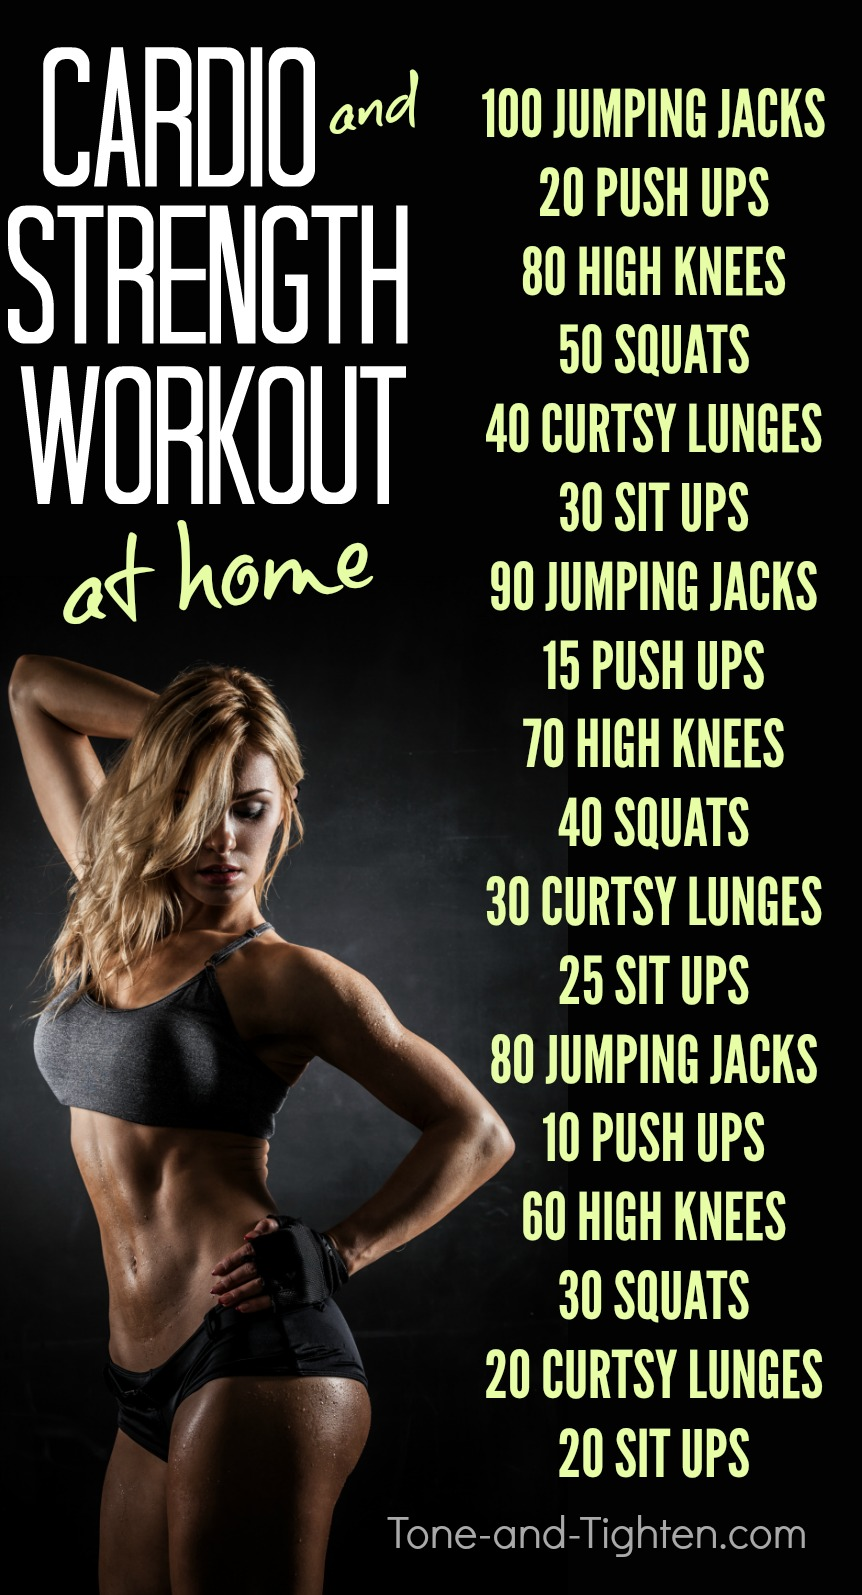 Cardio and Strength Training Workout | Tone and Tighten